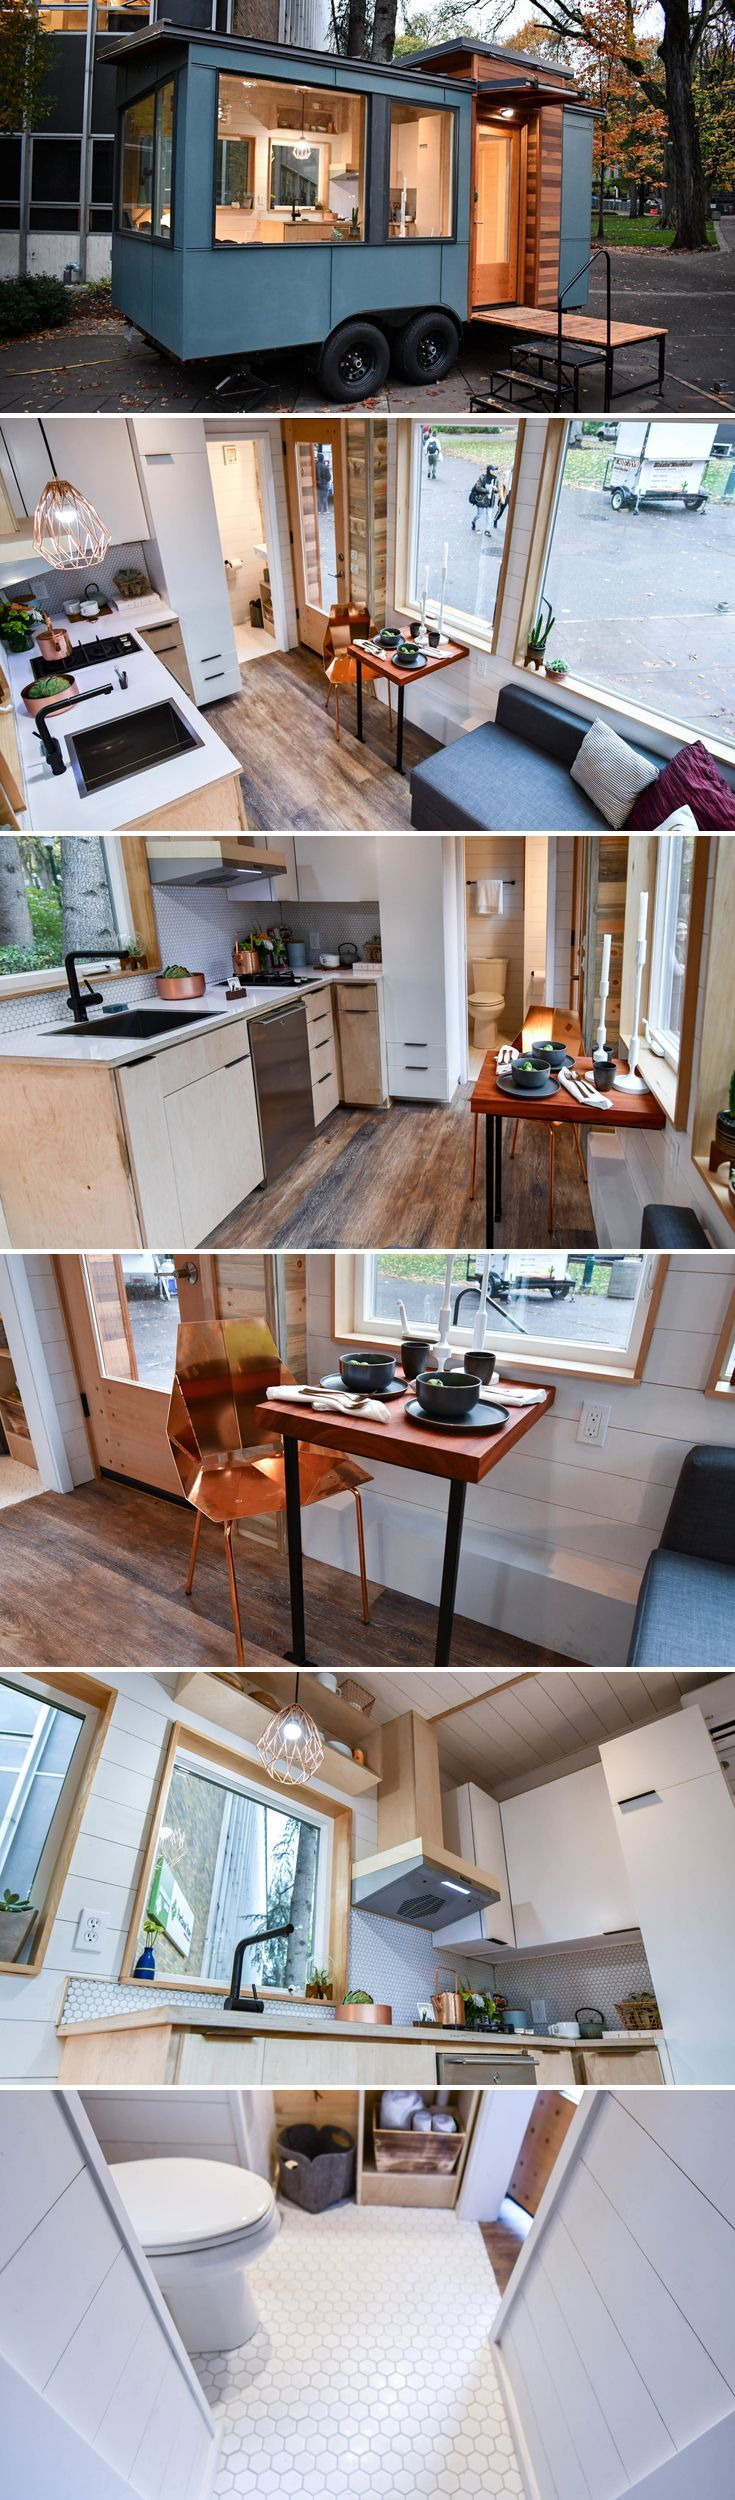 This stylish tiny house is the Verve Lux. At 16-feet long it's one of the smaller tiny houses on the market, but it still has room for all the essentials. #tinyhouses